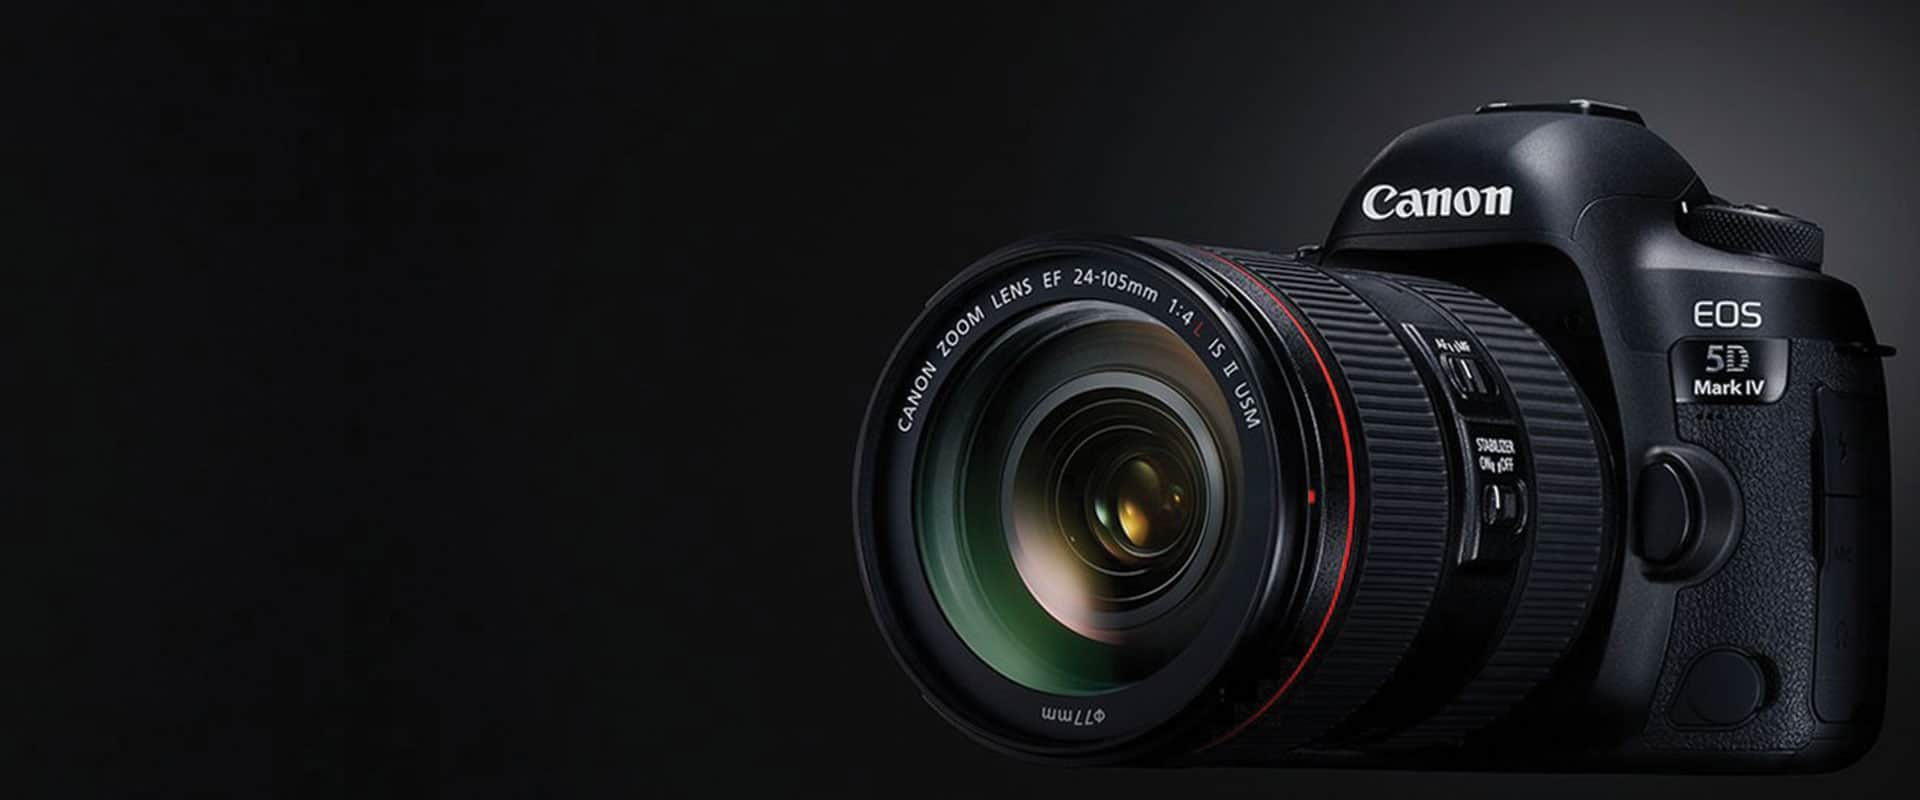 Best Digital Camera Under 200 USD 2019- Ultimate Buyer's Guide